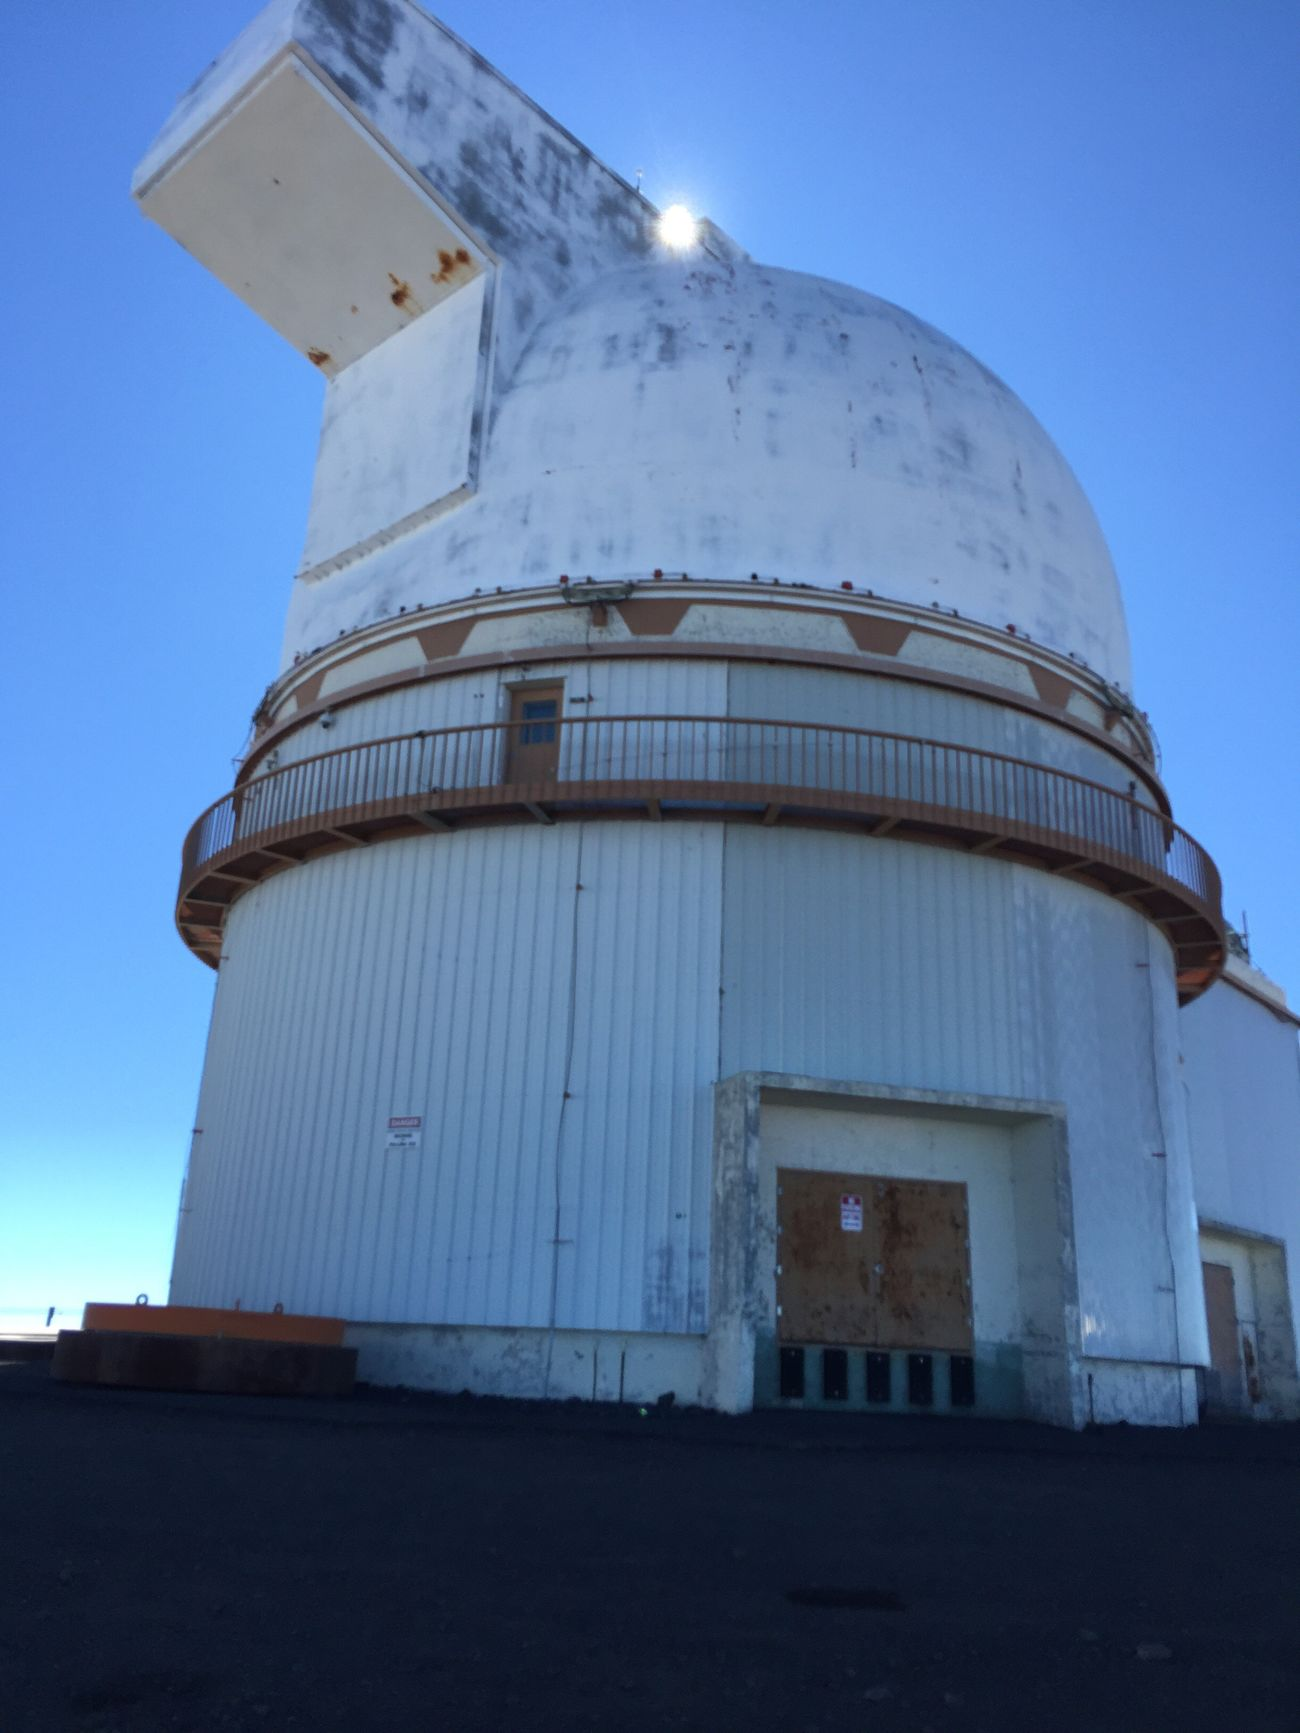 Bigisland Hawaii Observatory 14,000ft Viewformiles Amazing View Blue Outdoors Sky Low Angle View